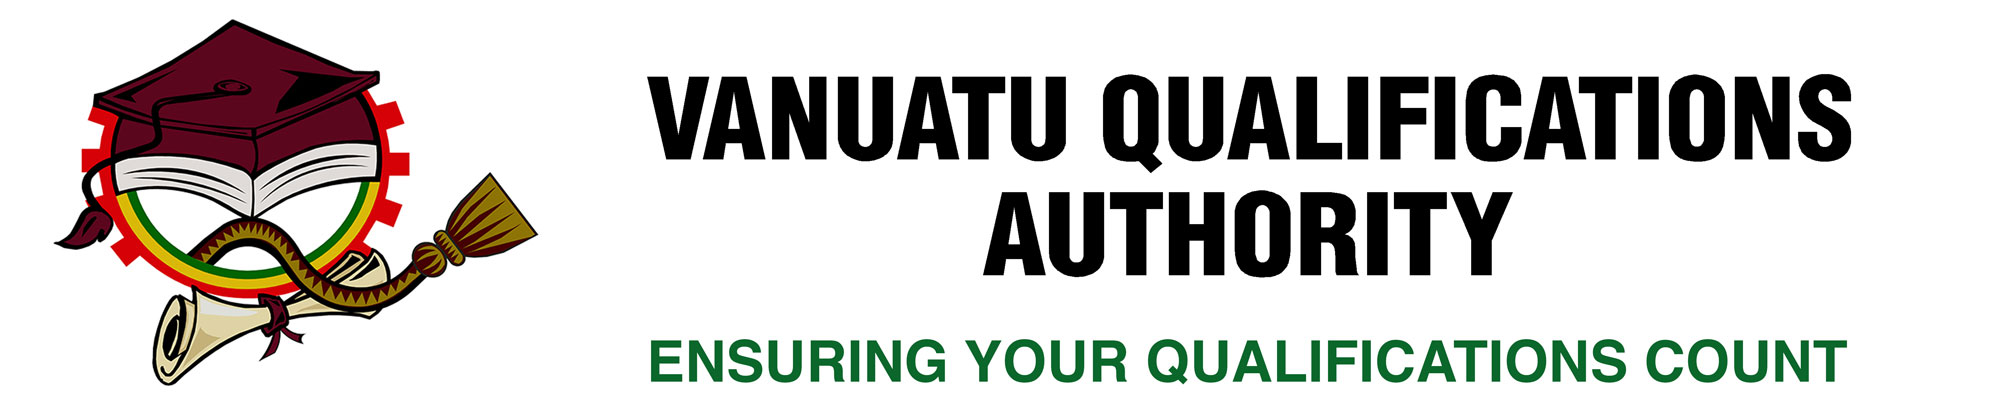 Vanuatu Qualifications Authority (VQA) Logo